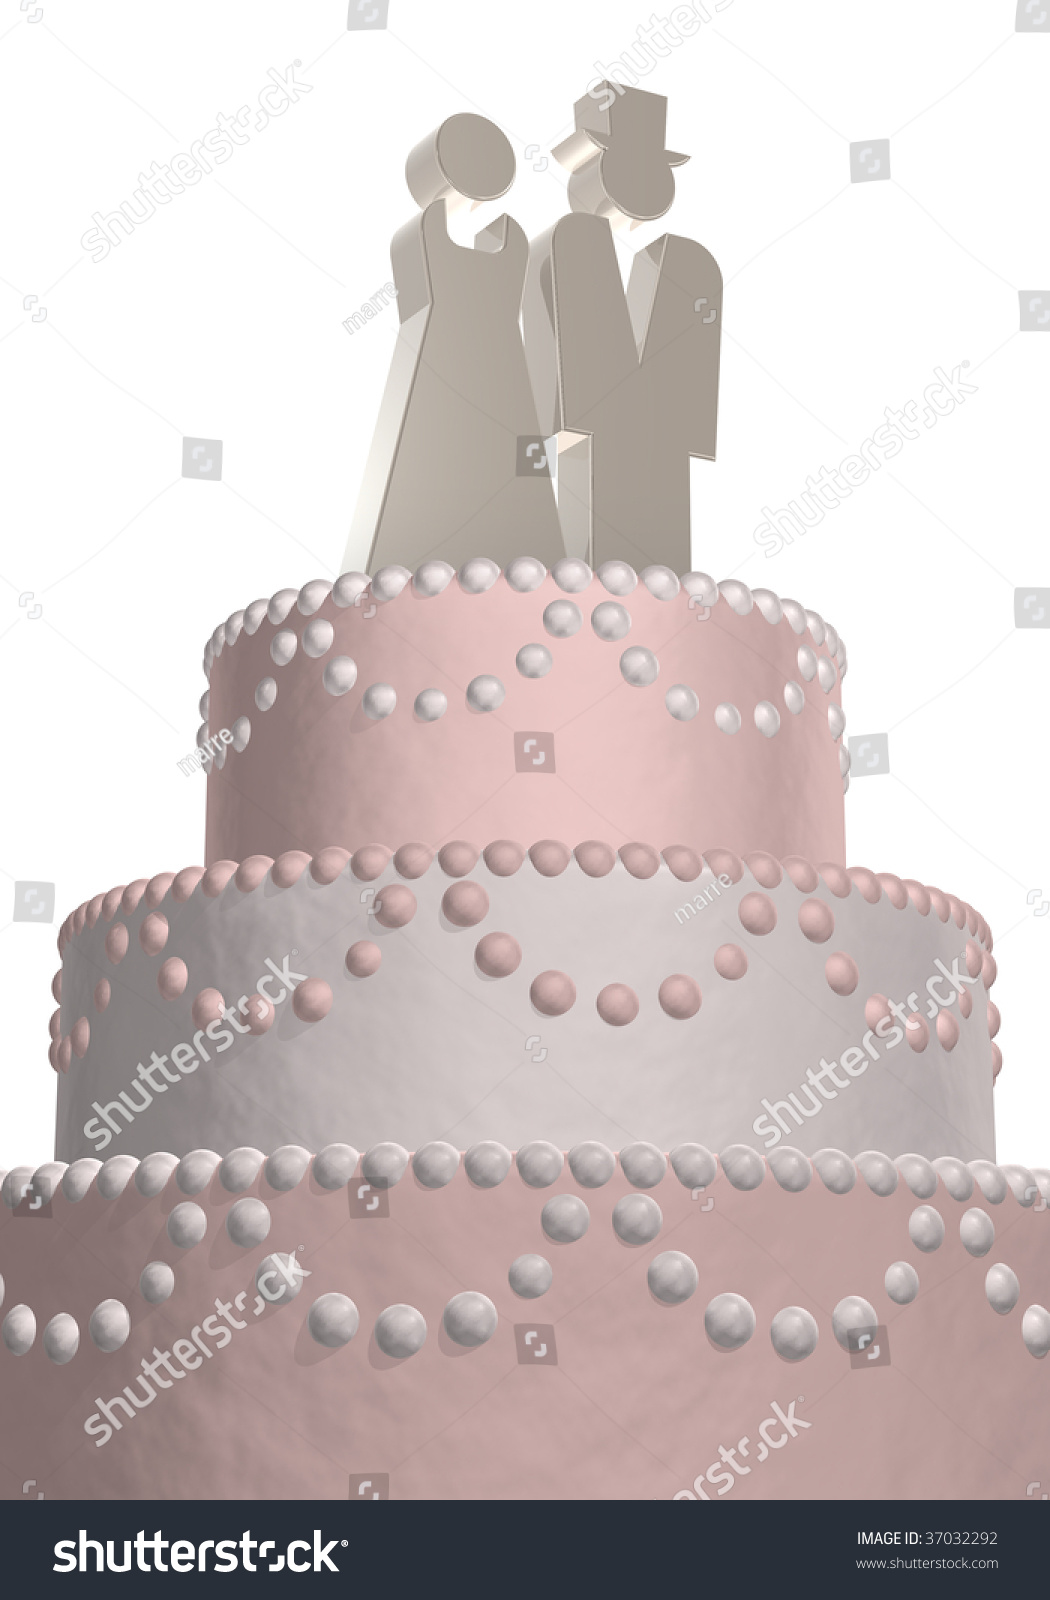 Wedding cake silver symbols male female stock illustration 37032292 wedding cake with silver symbols male and female biocorpaavc Image collections